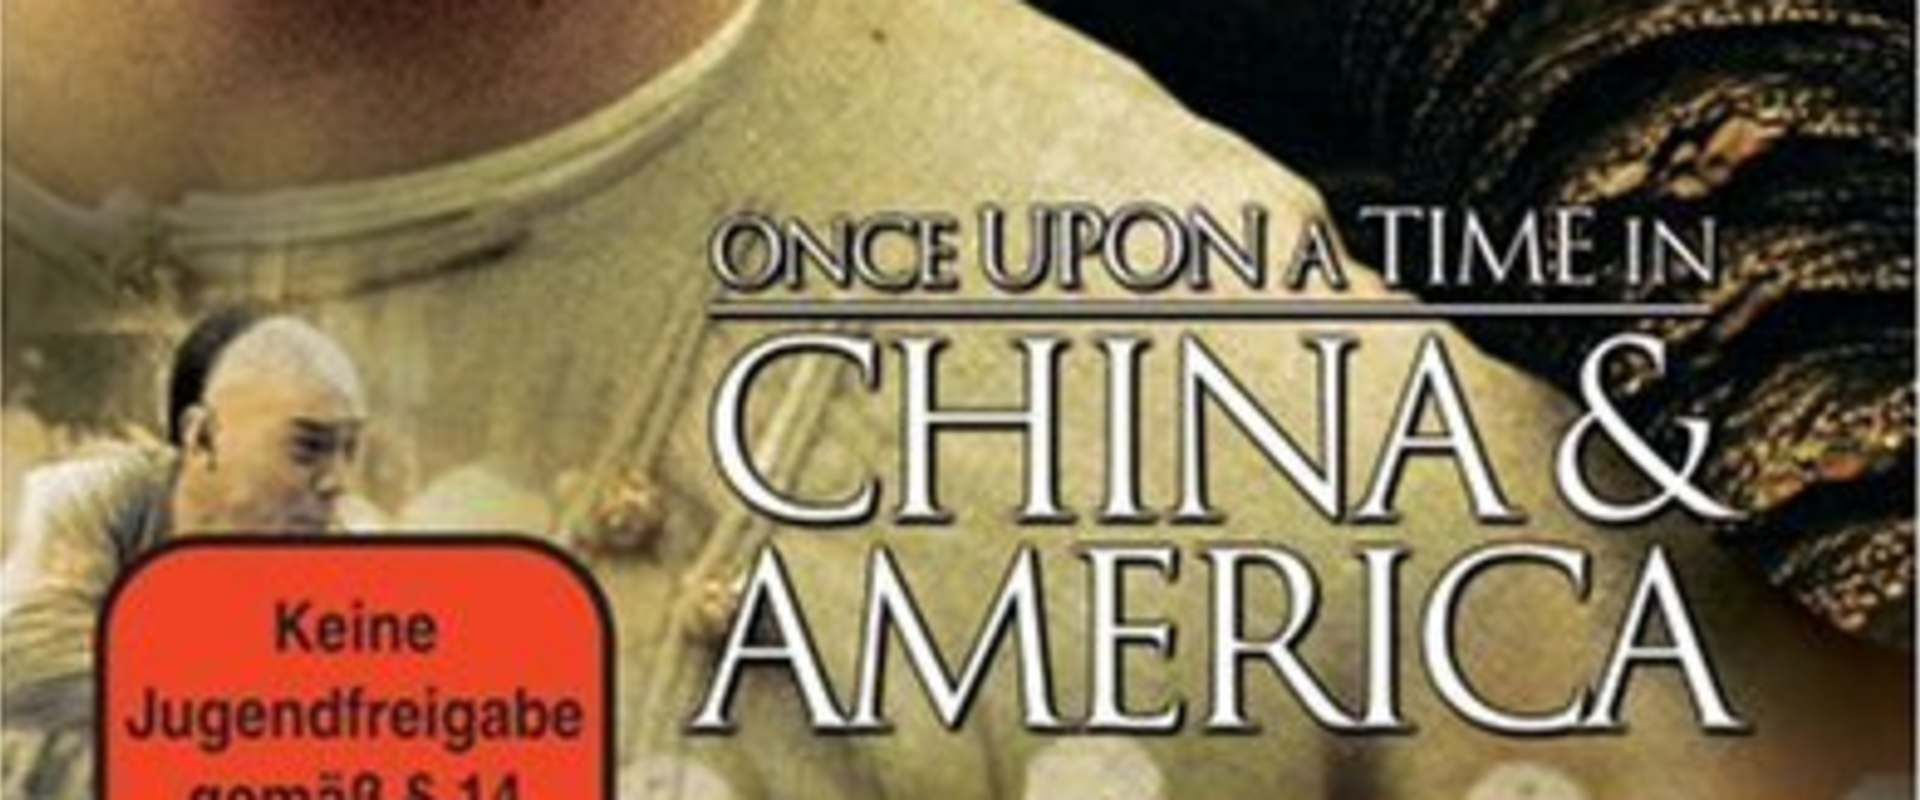 Once Upon a Time in China and America background 1